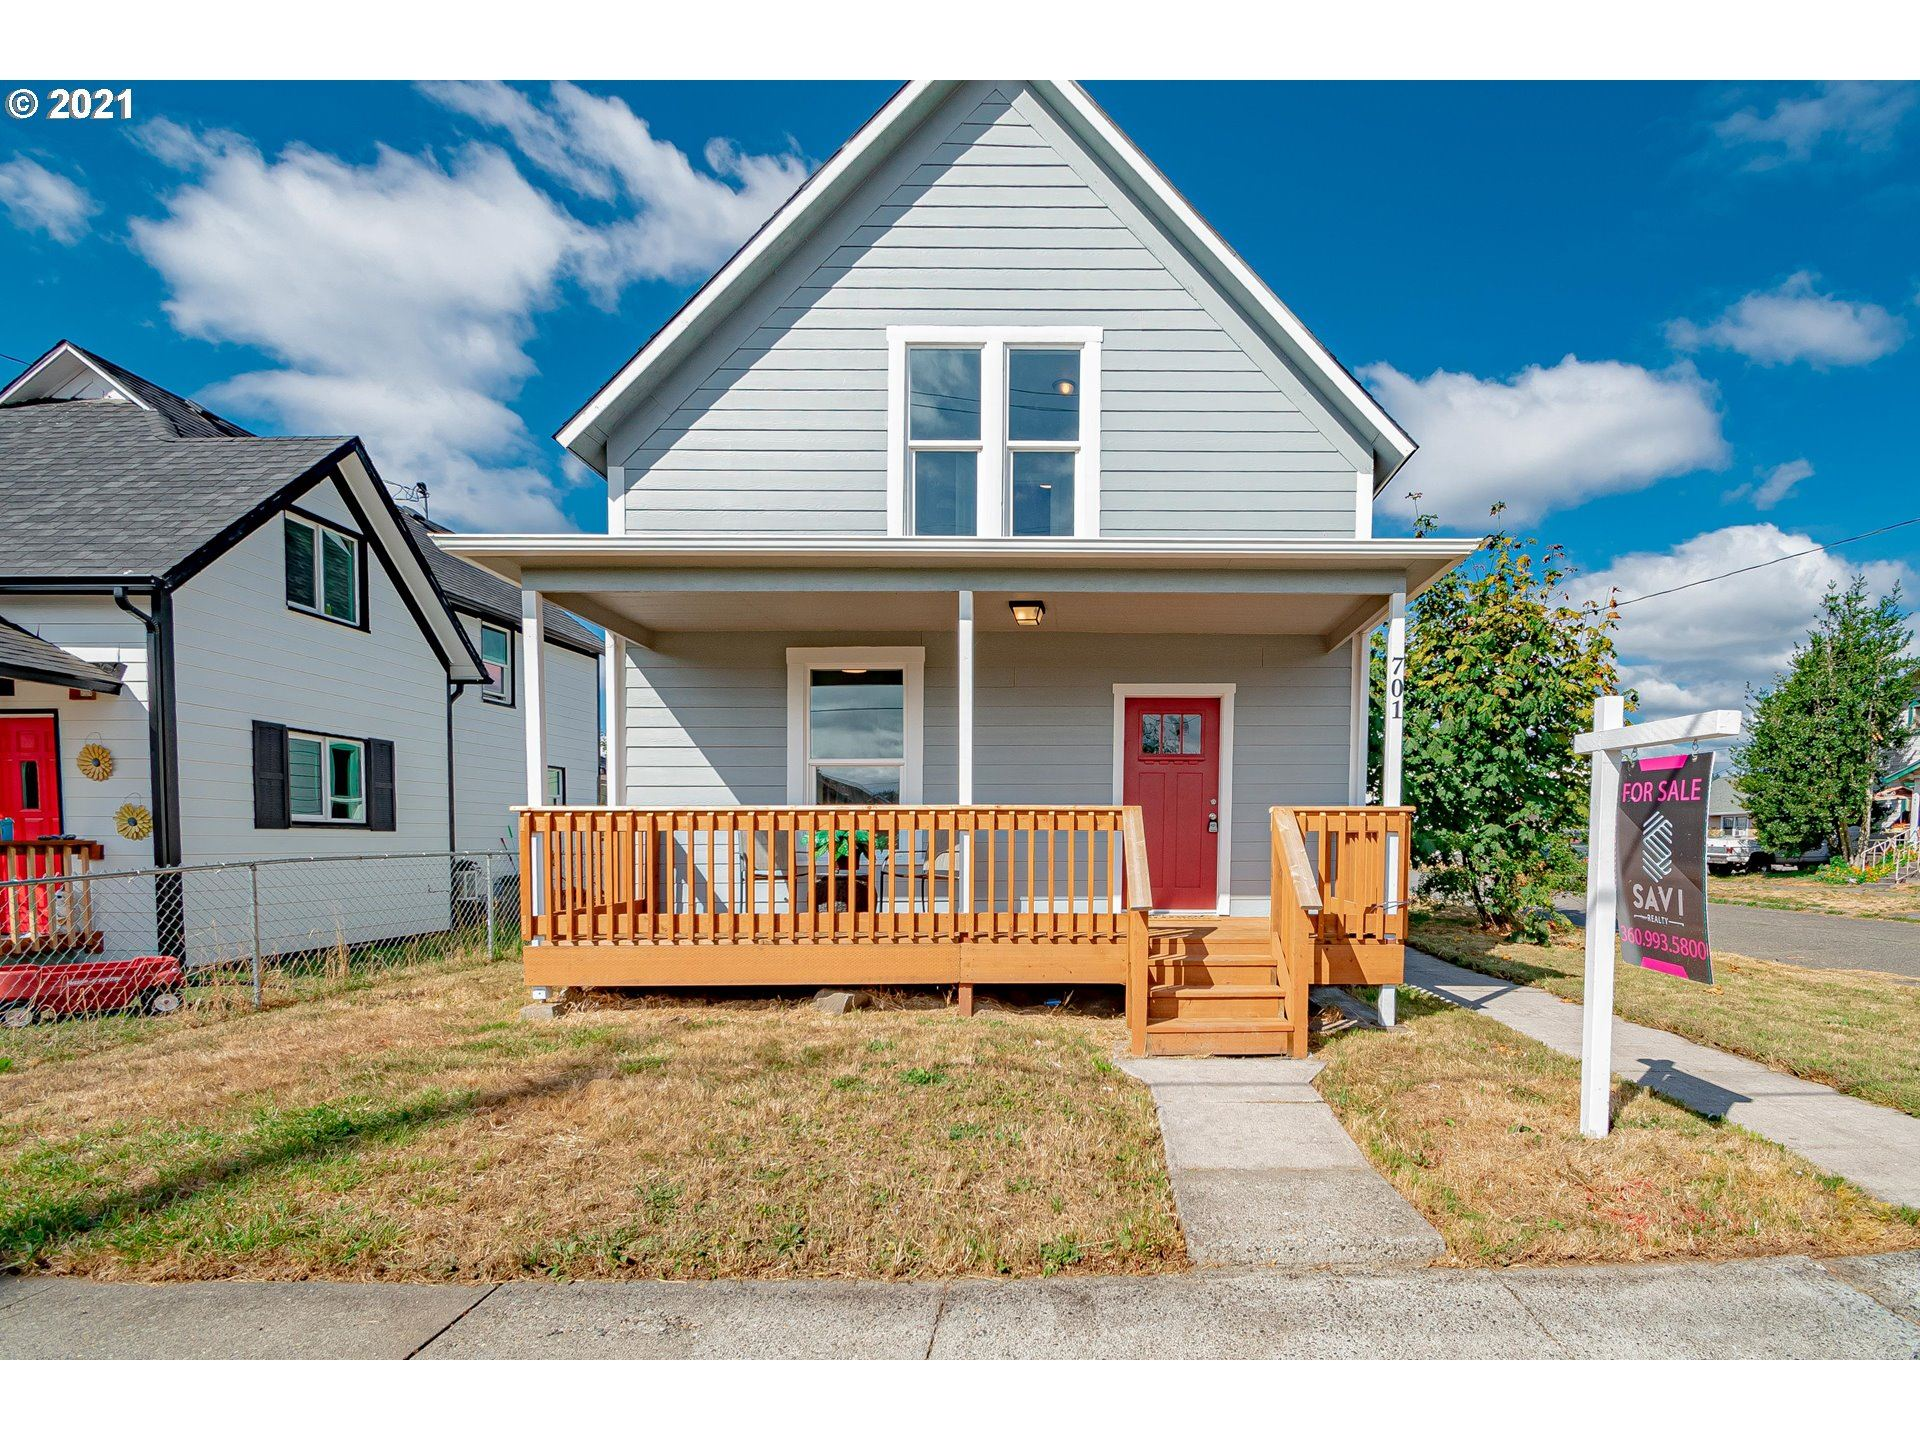 701 S 5TH AVE, Kelso, WA 98626 - MLS#: 21466229